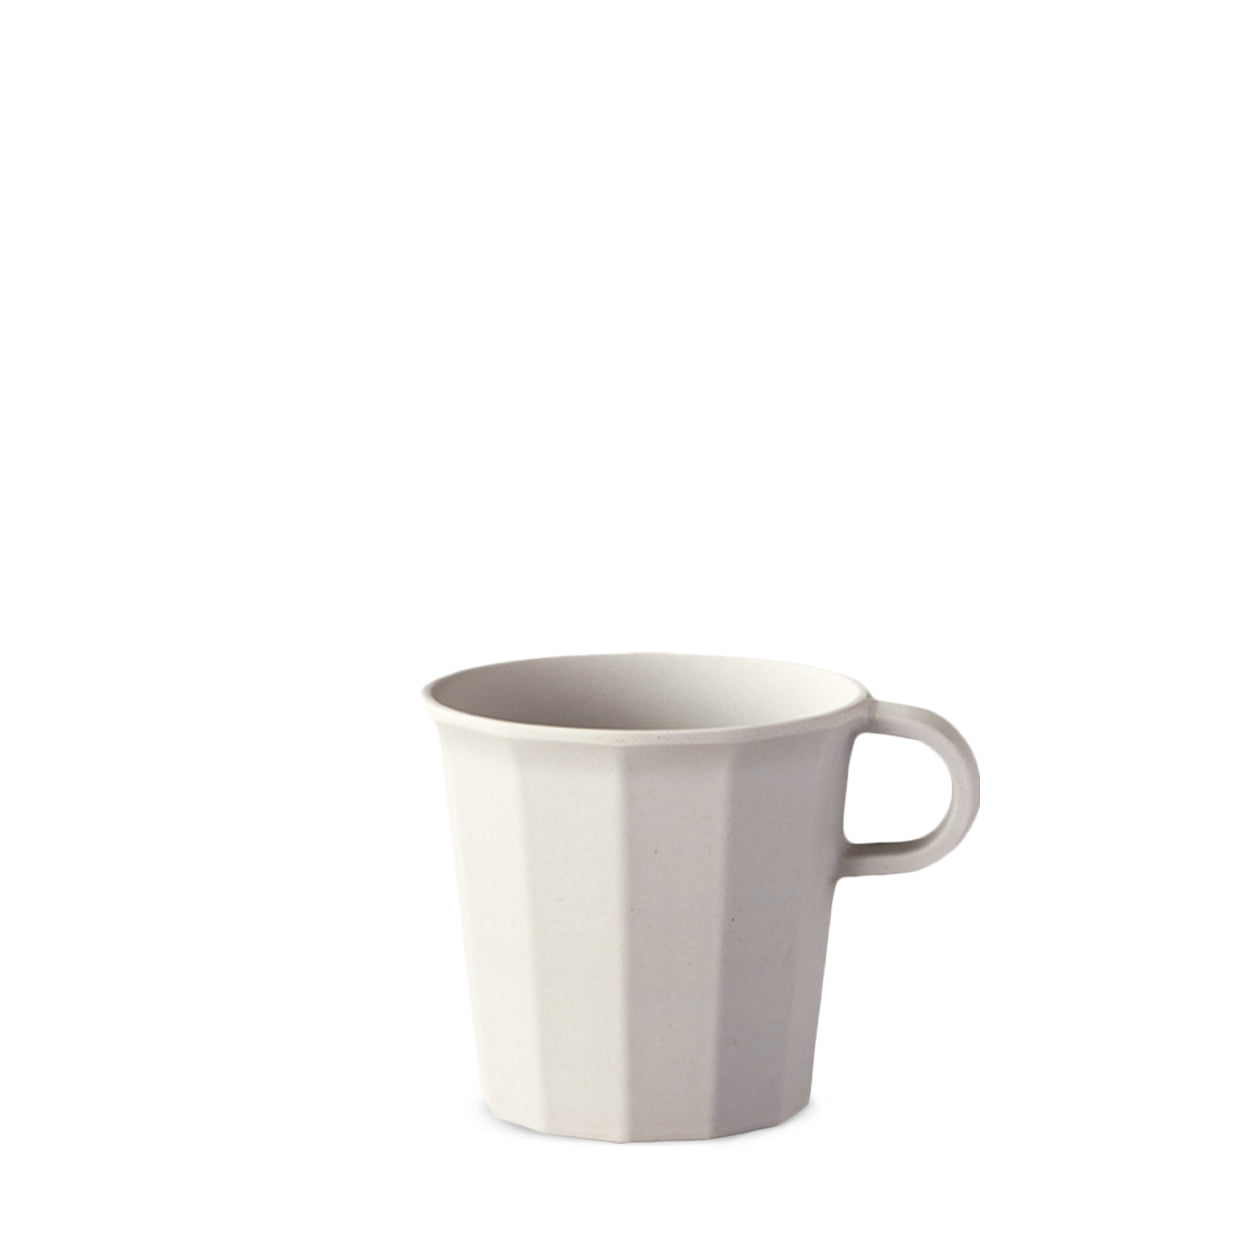 ALFRESCO Mug white